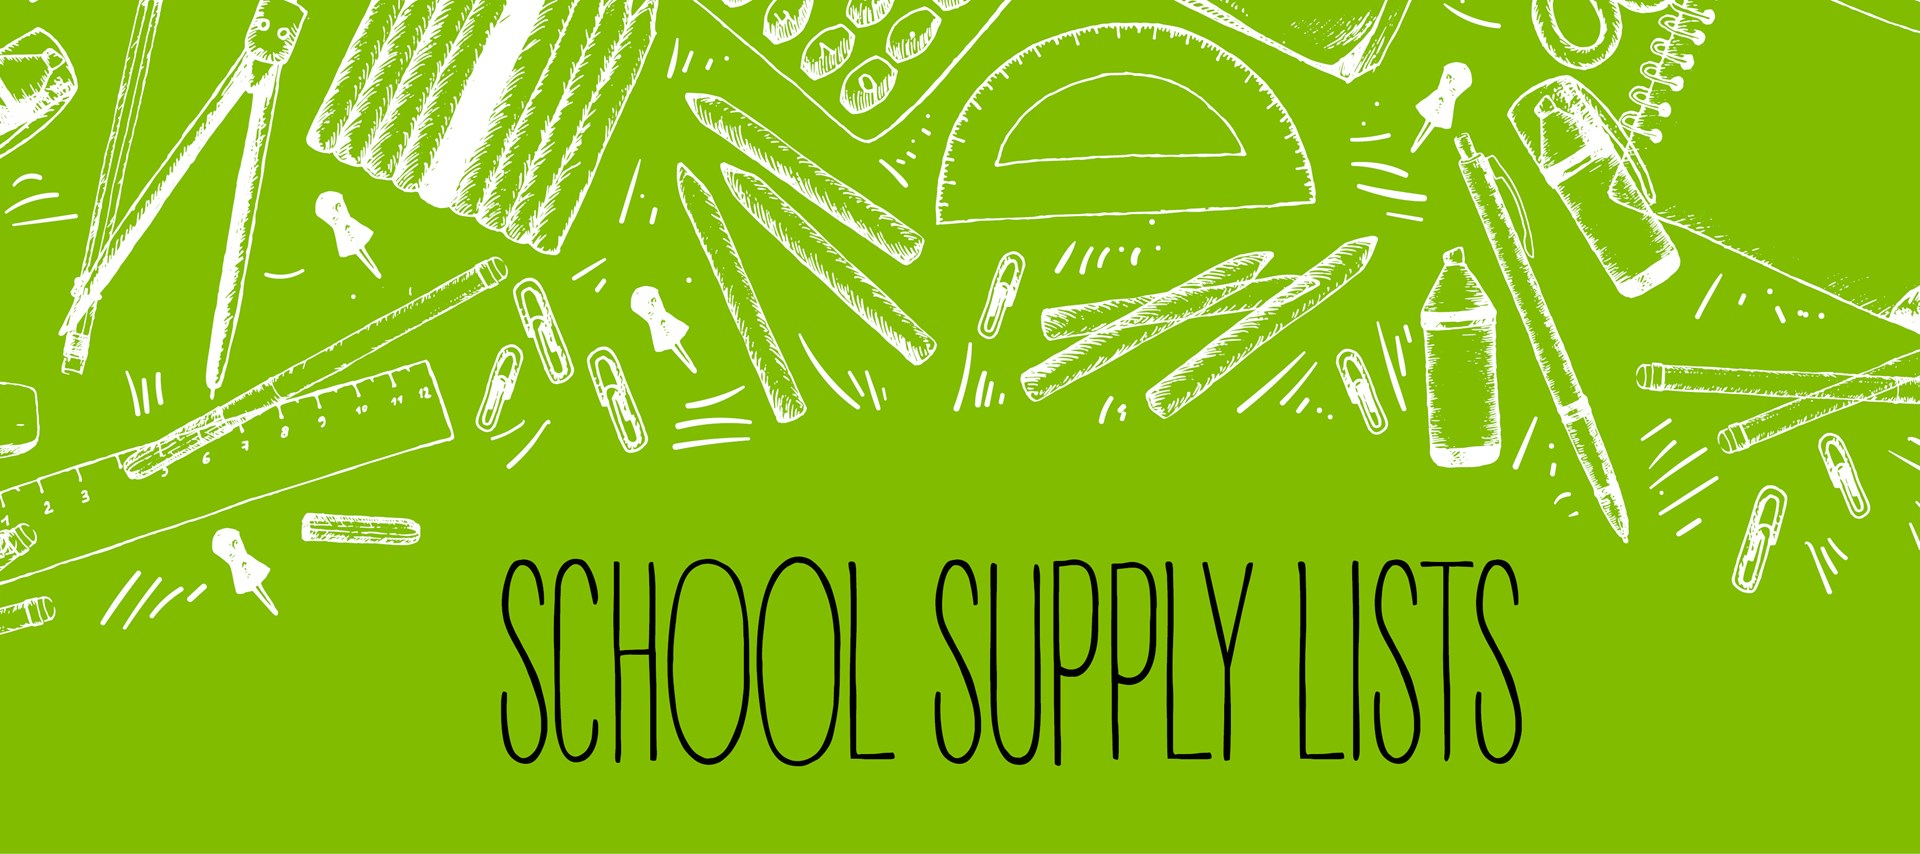 Brownell School Supply List